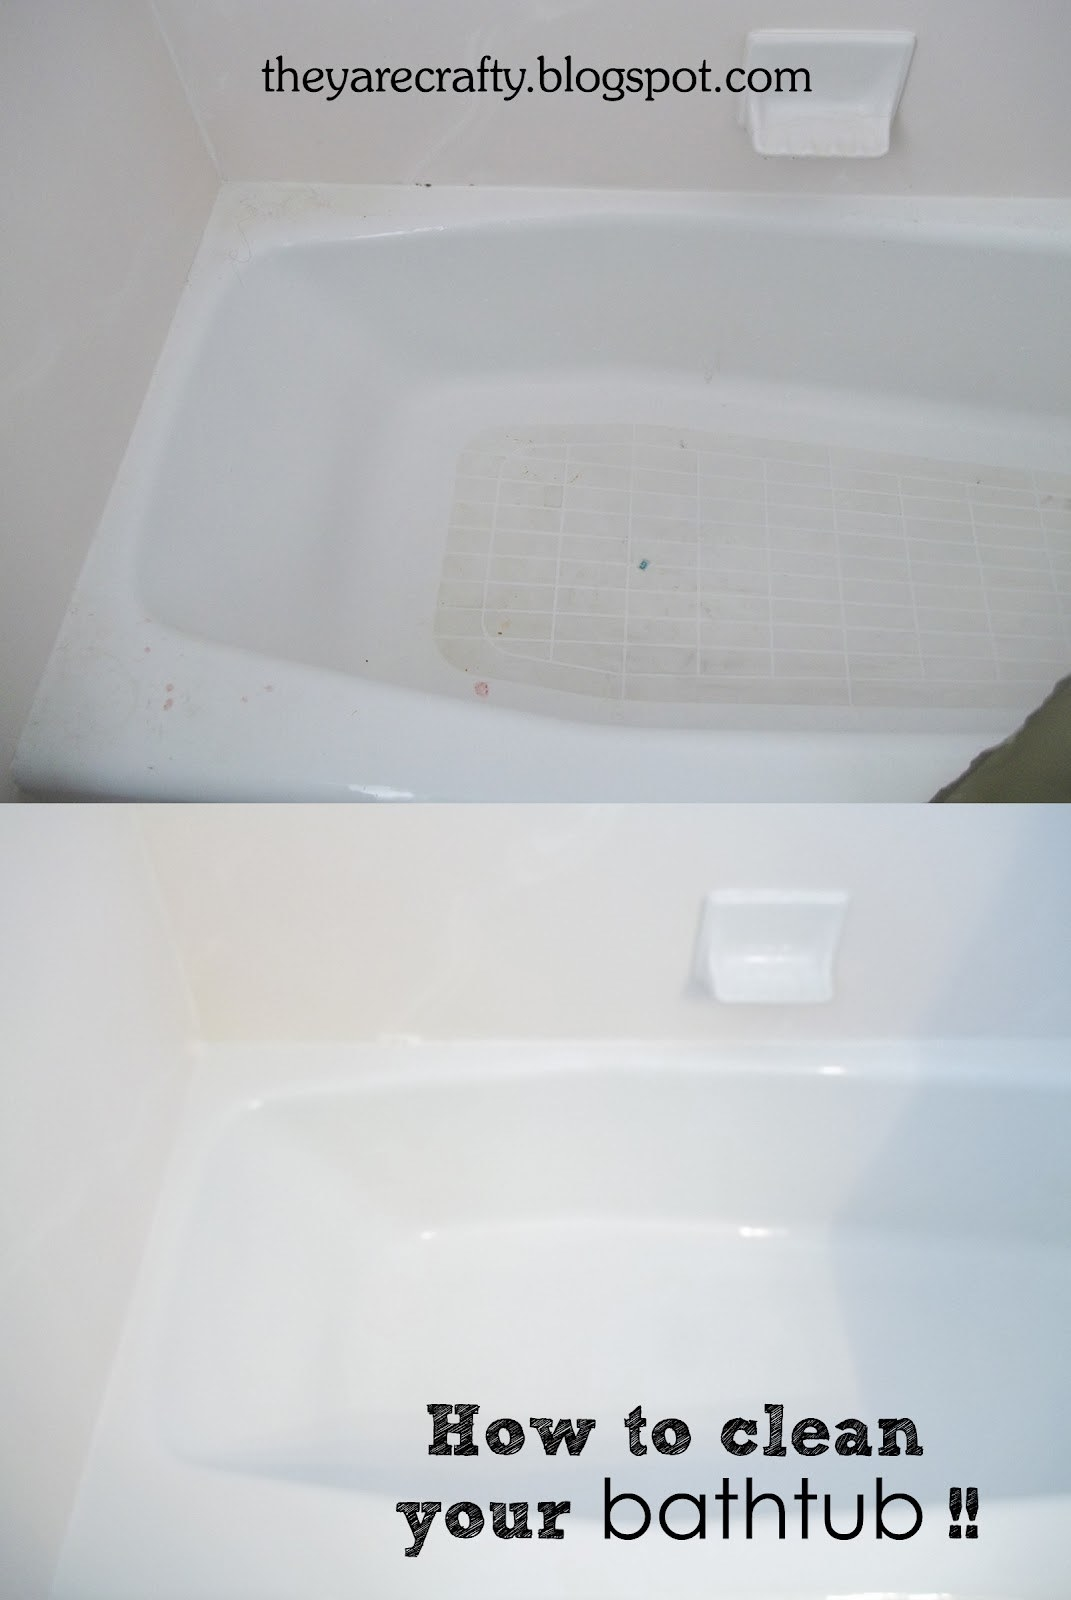 A blogger's before and after photos, where the tub first looks grimy, then looks bright white and clean